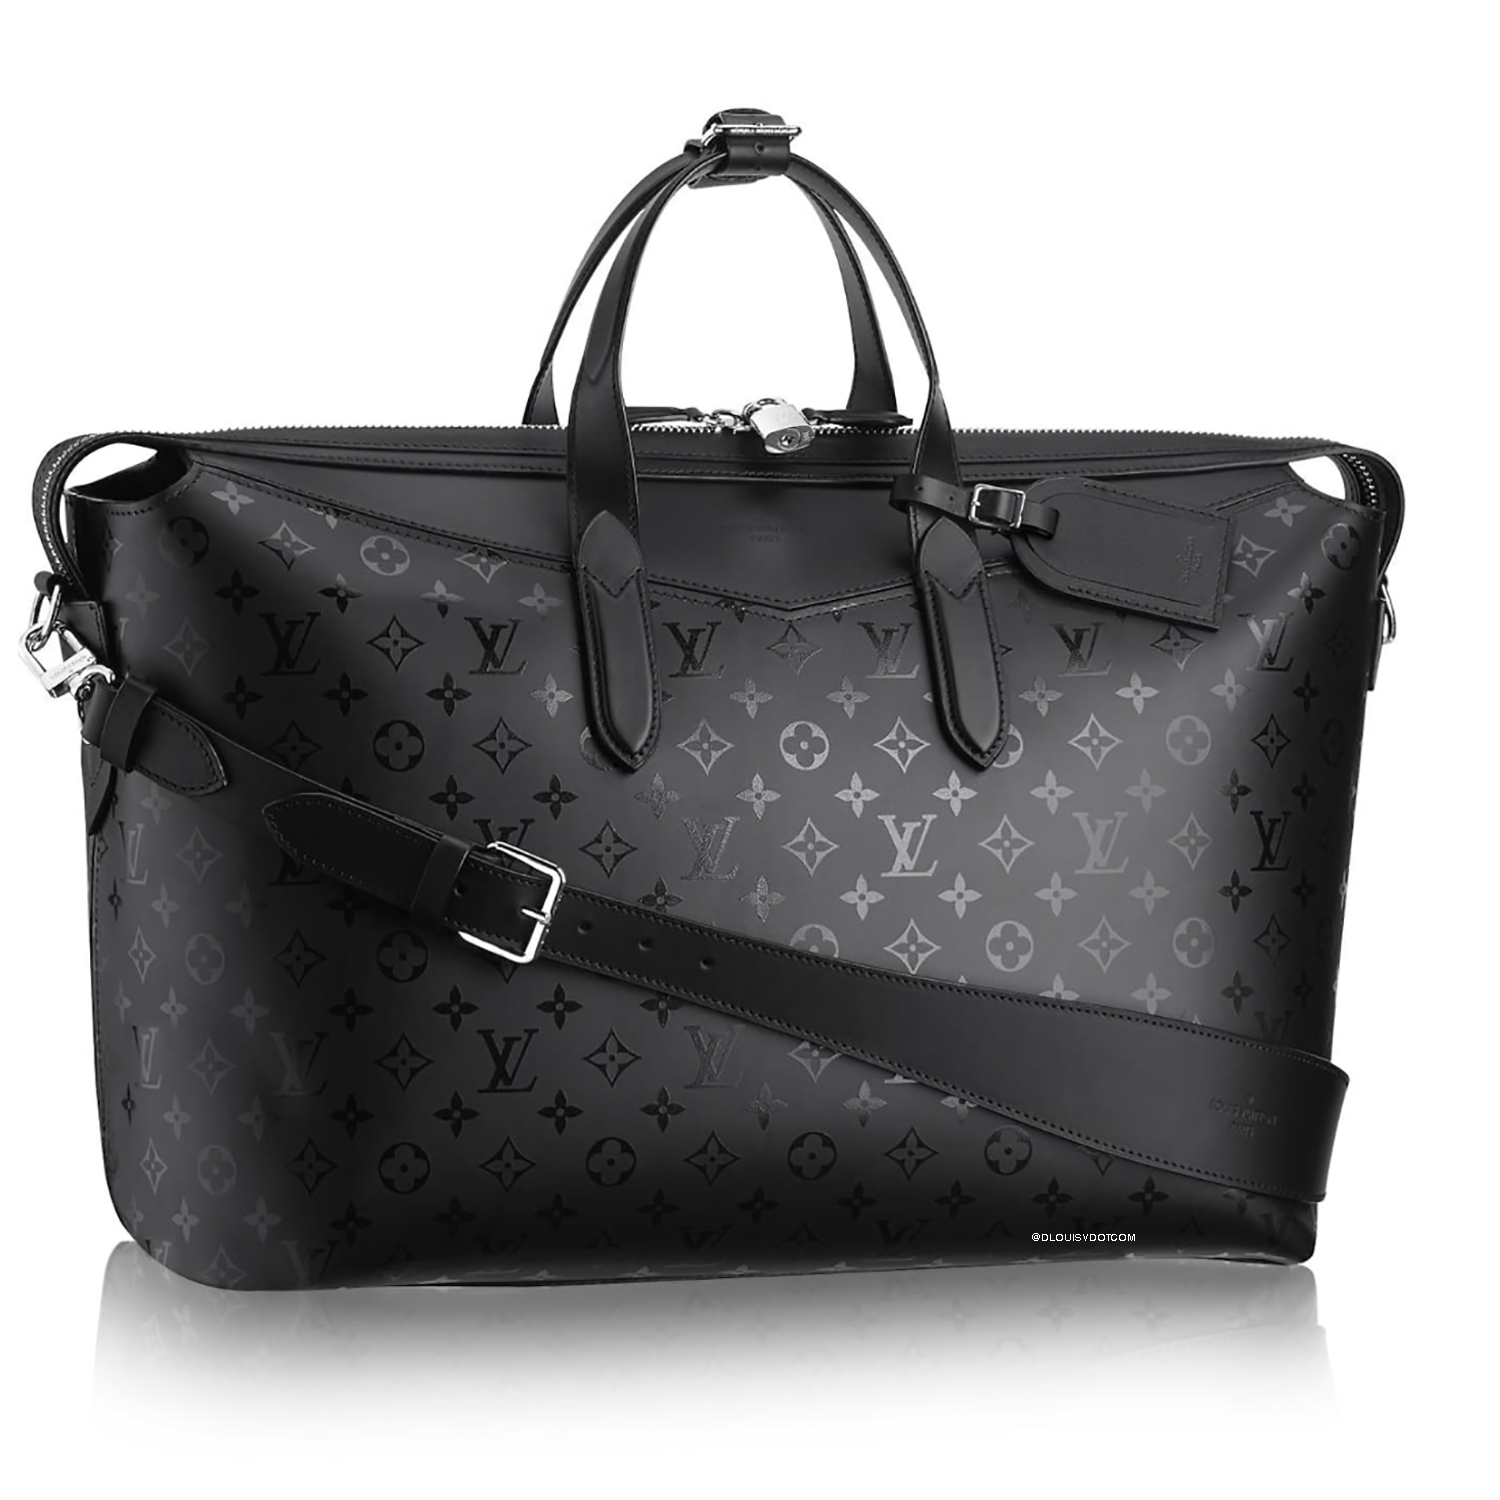 TRAVEL BAG EXPLORER - €3500 $M40648MONOGRAM ILLUSION